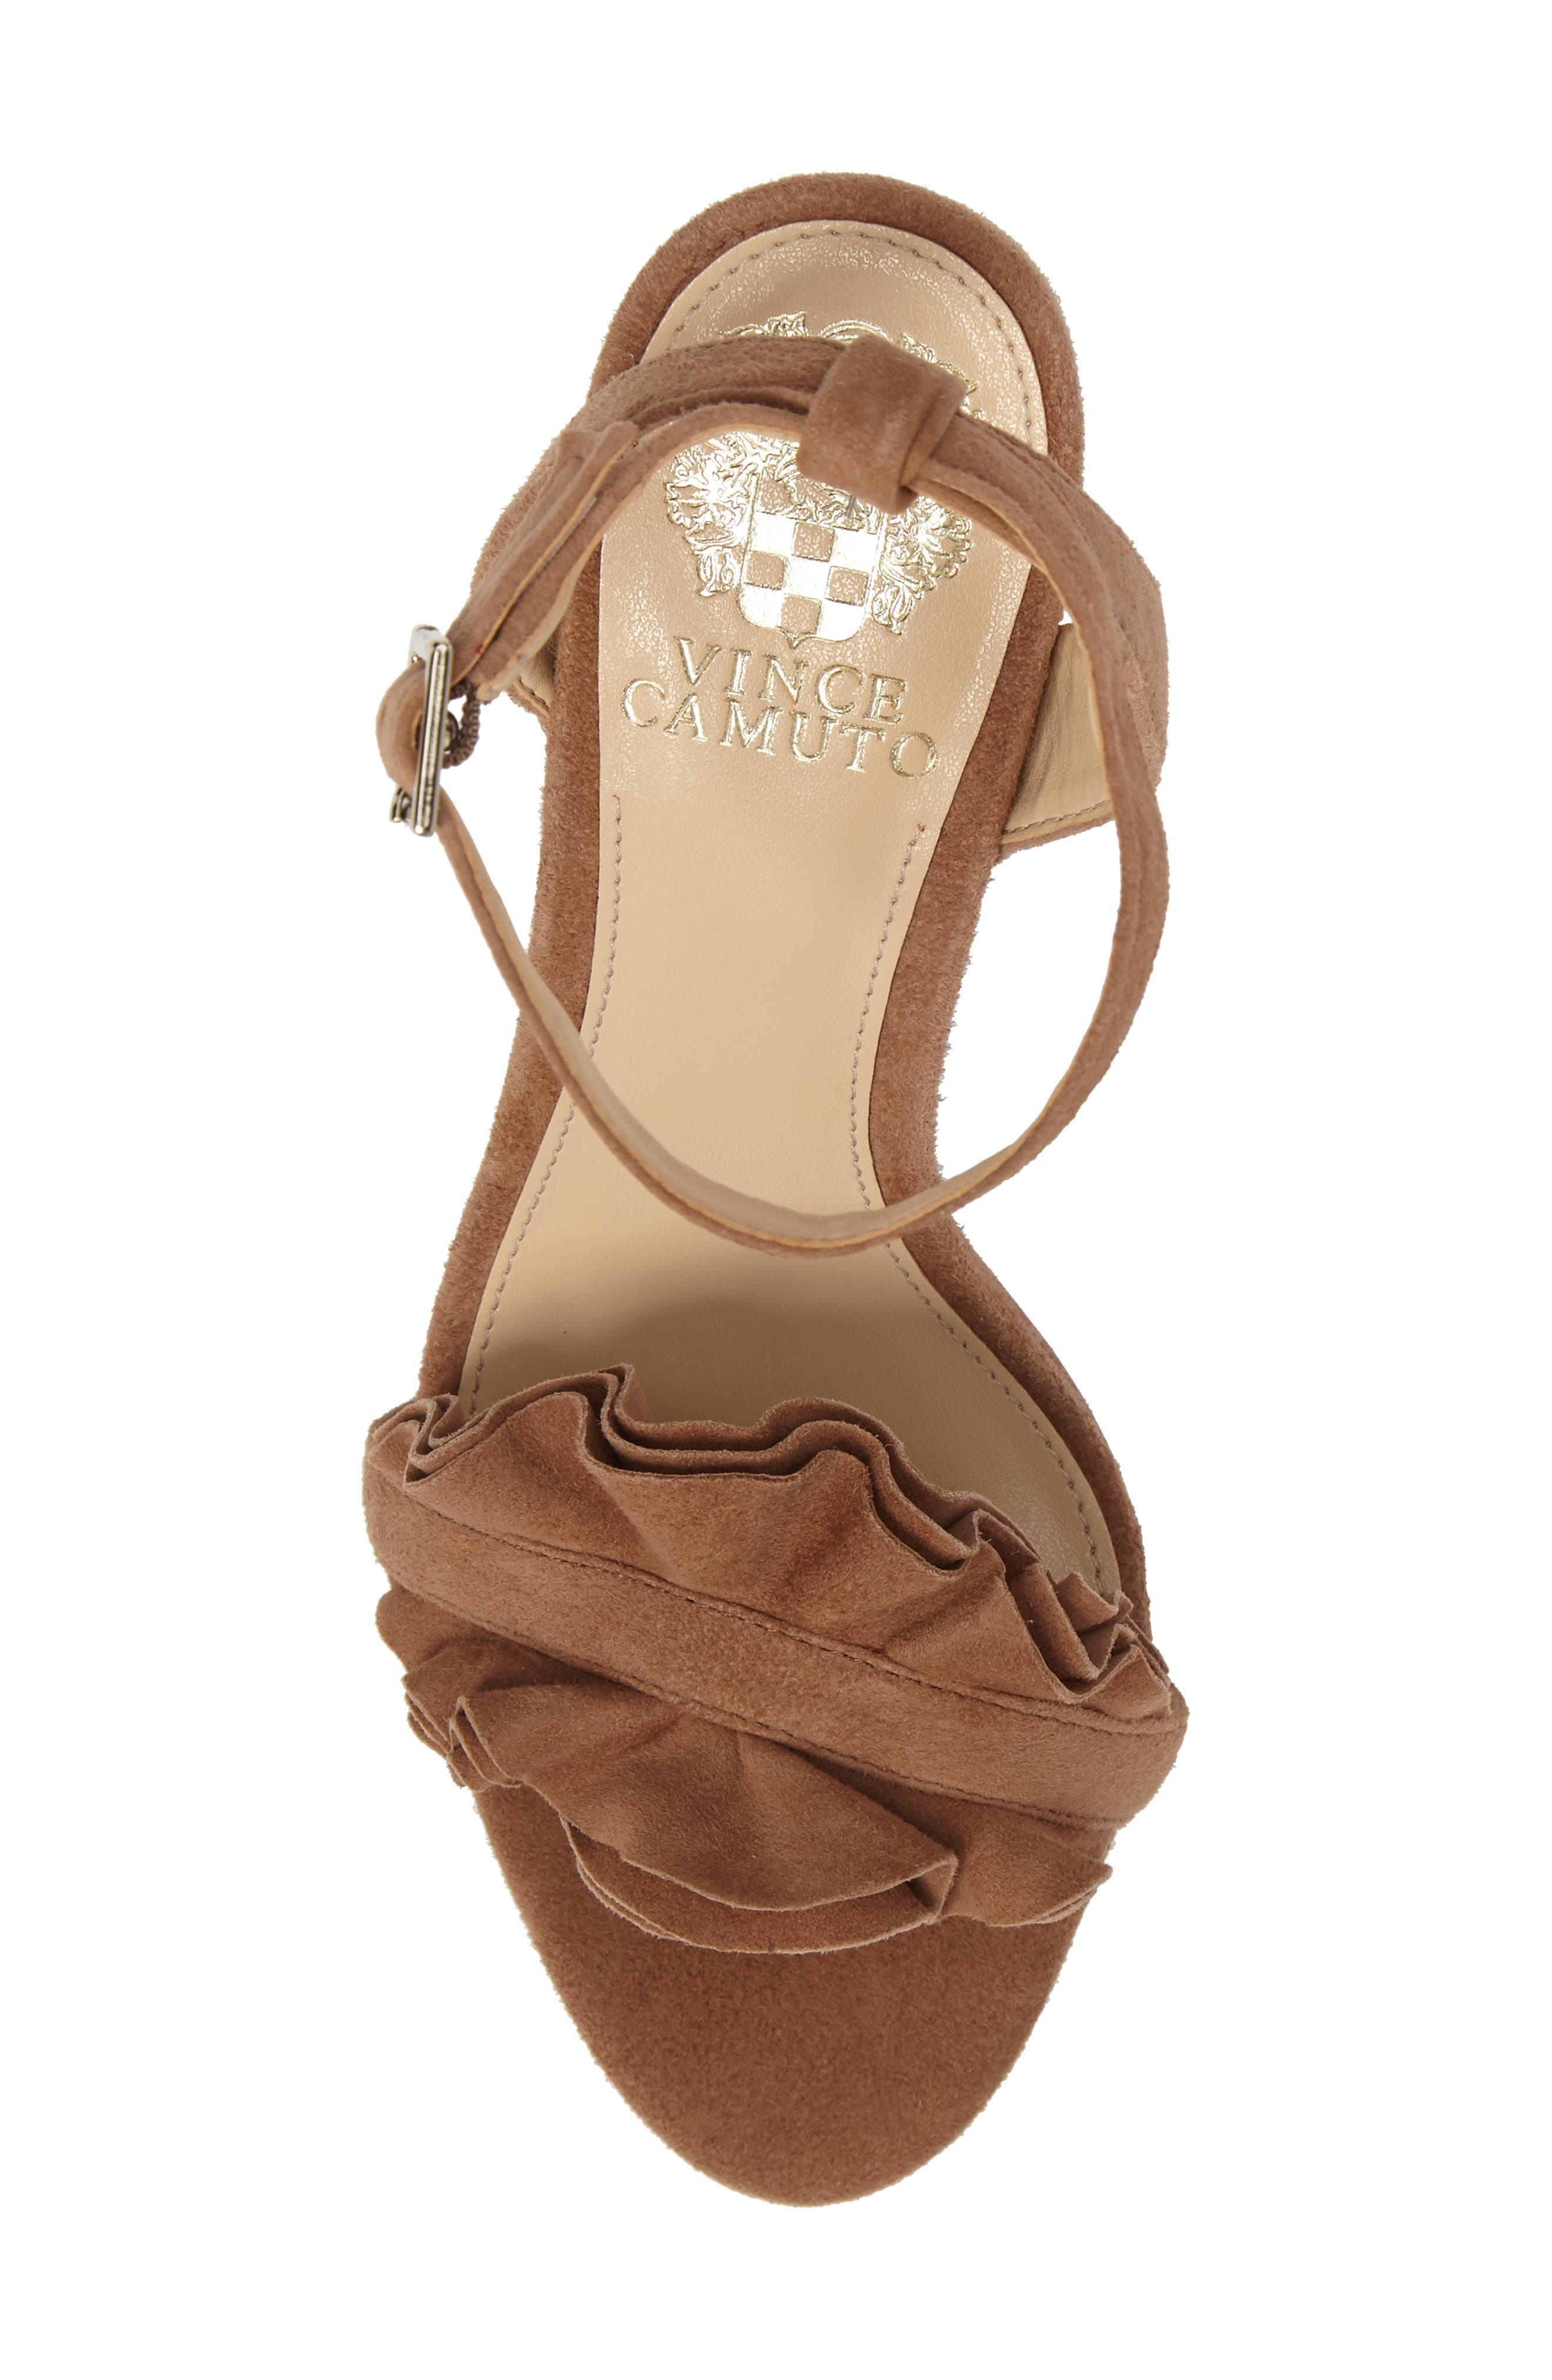 Vinta Sandal,                             Alternate thumbnail 6, color,                             Amendoa Suede